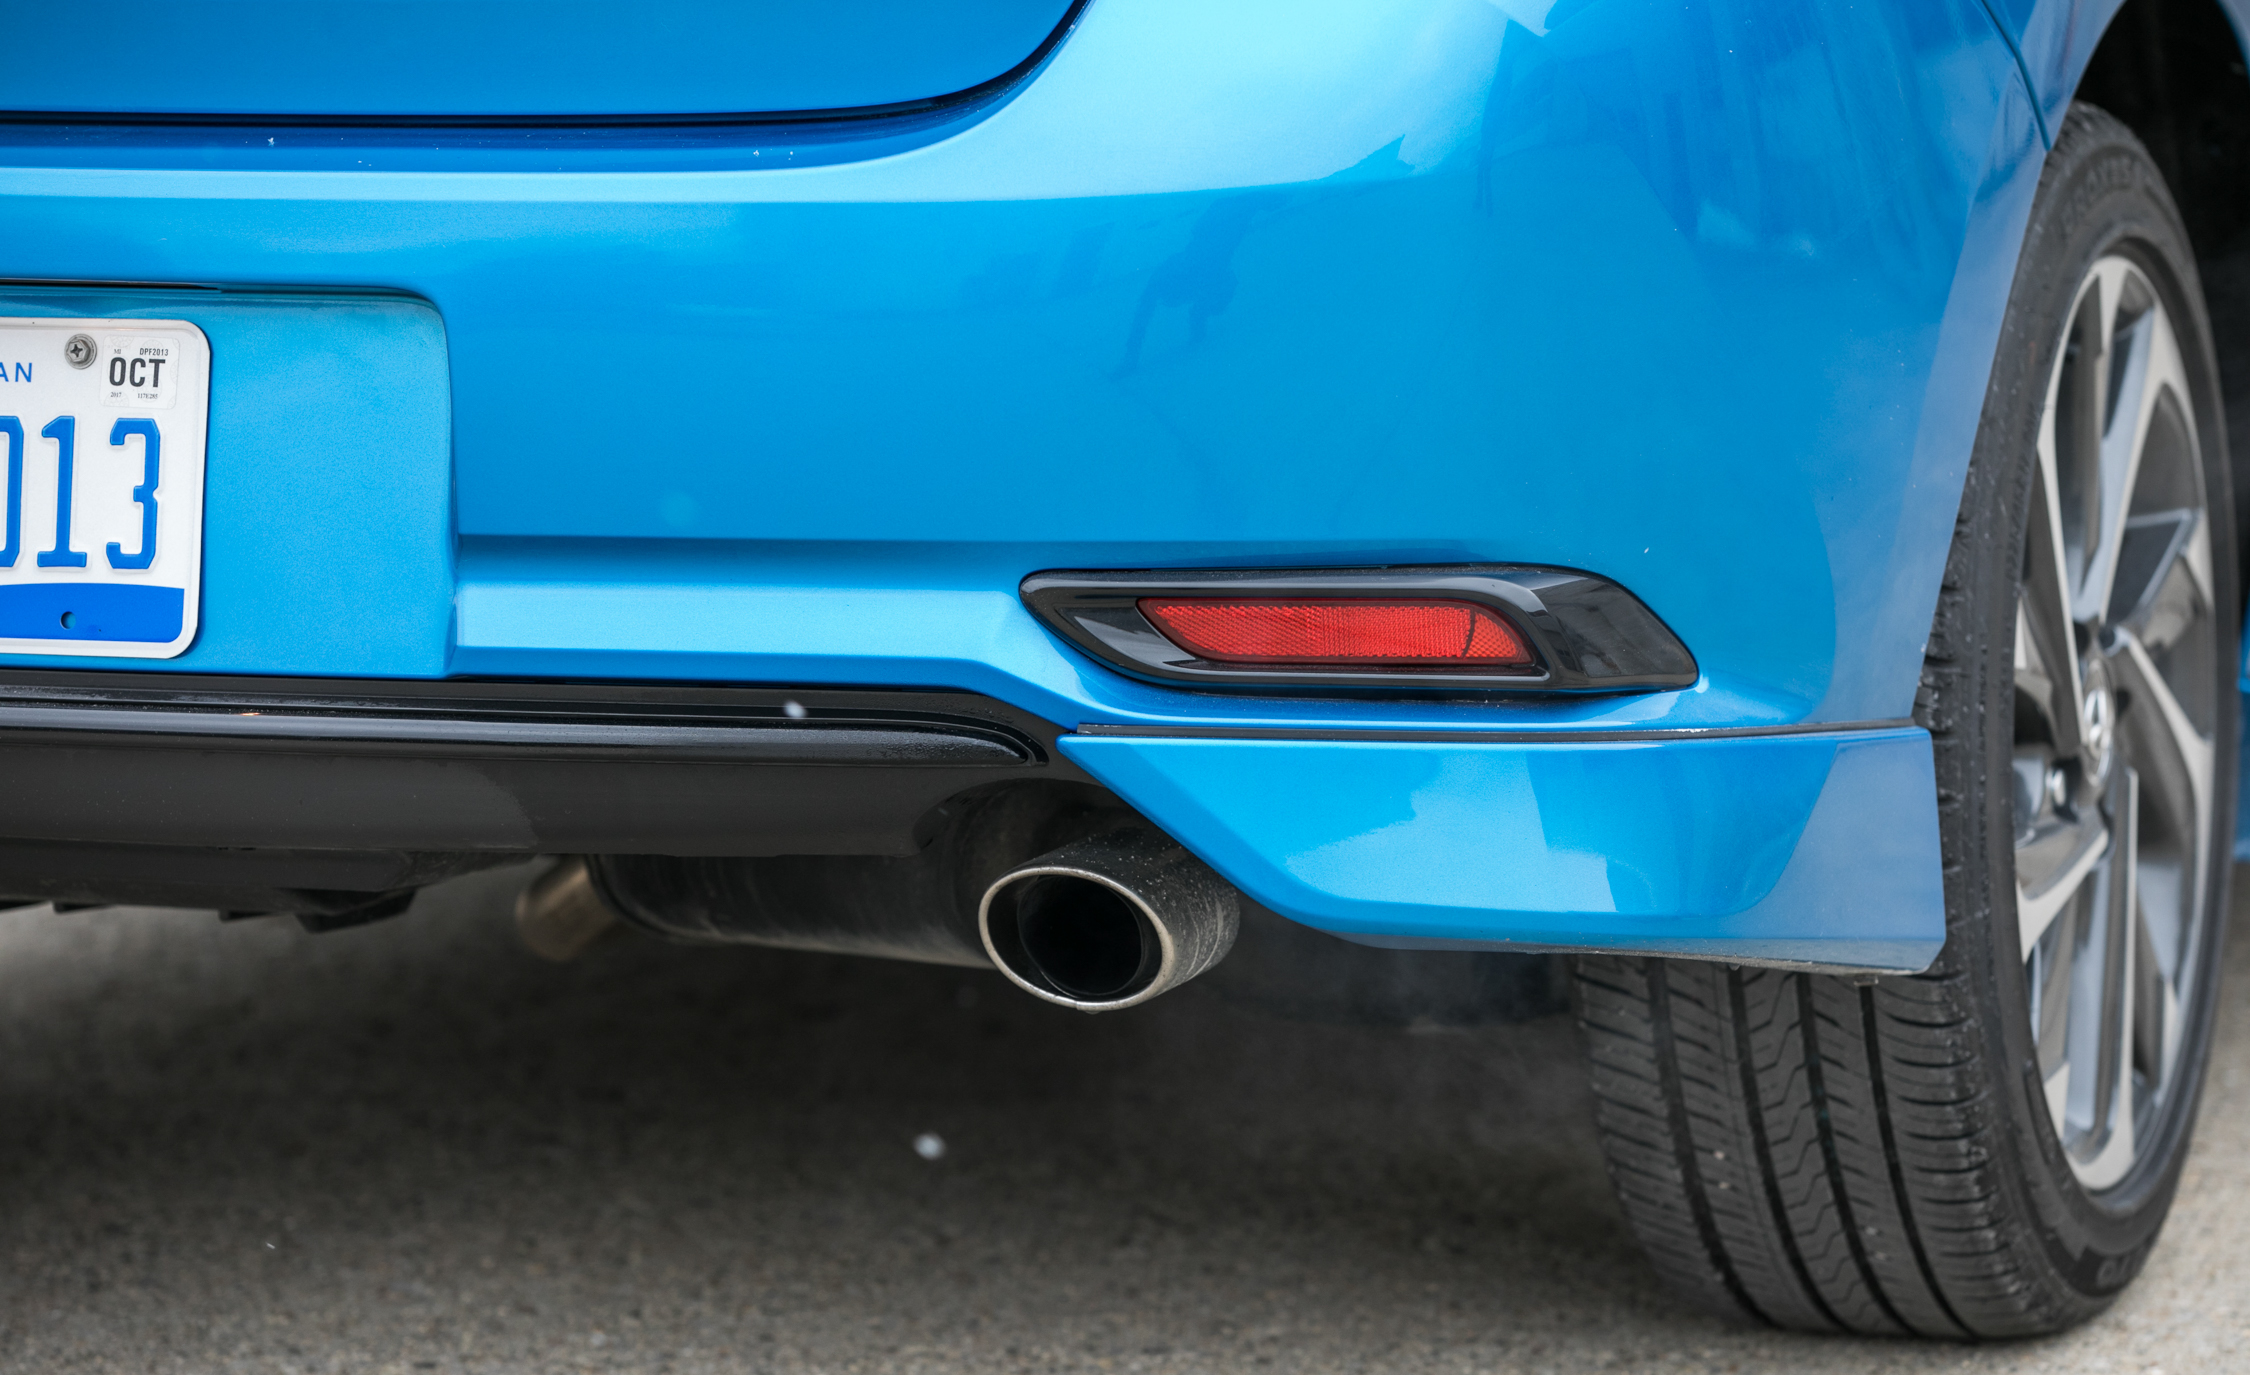 2017 Toyota Corolla IM Hatchback Exterior View Rear Bumper And Exhaust (Photo 15 of 52)